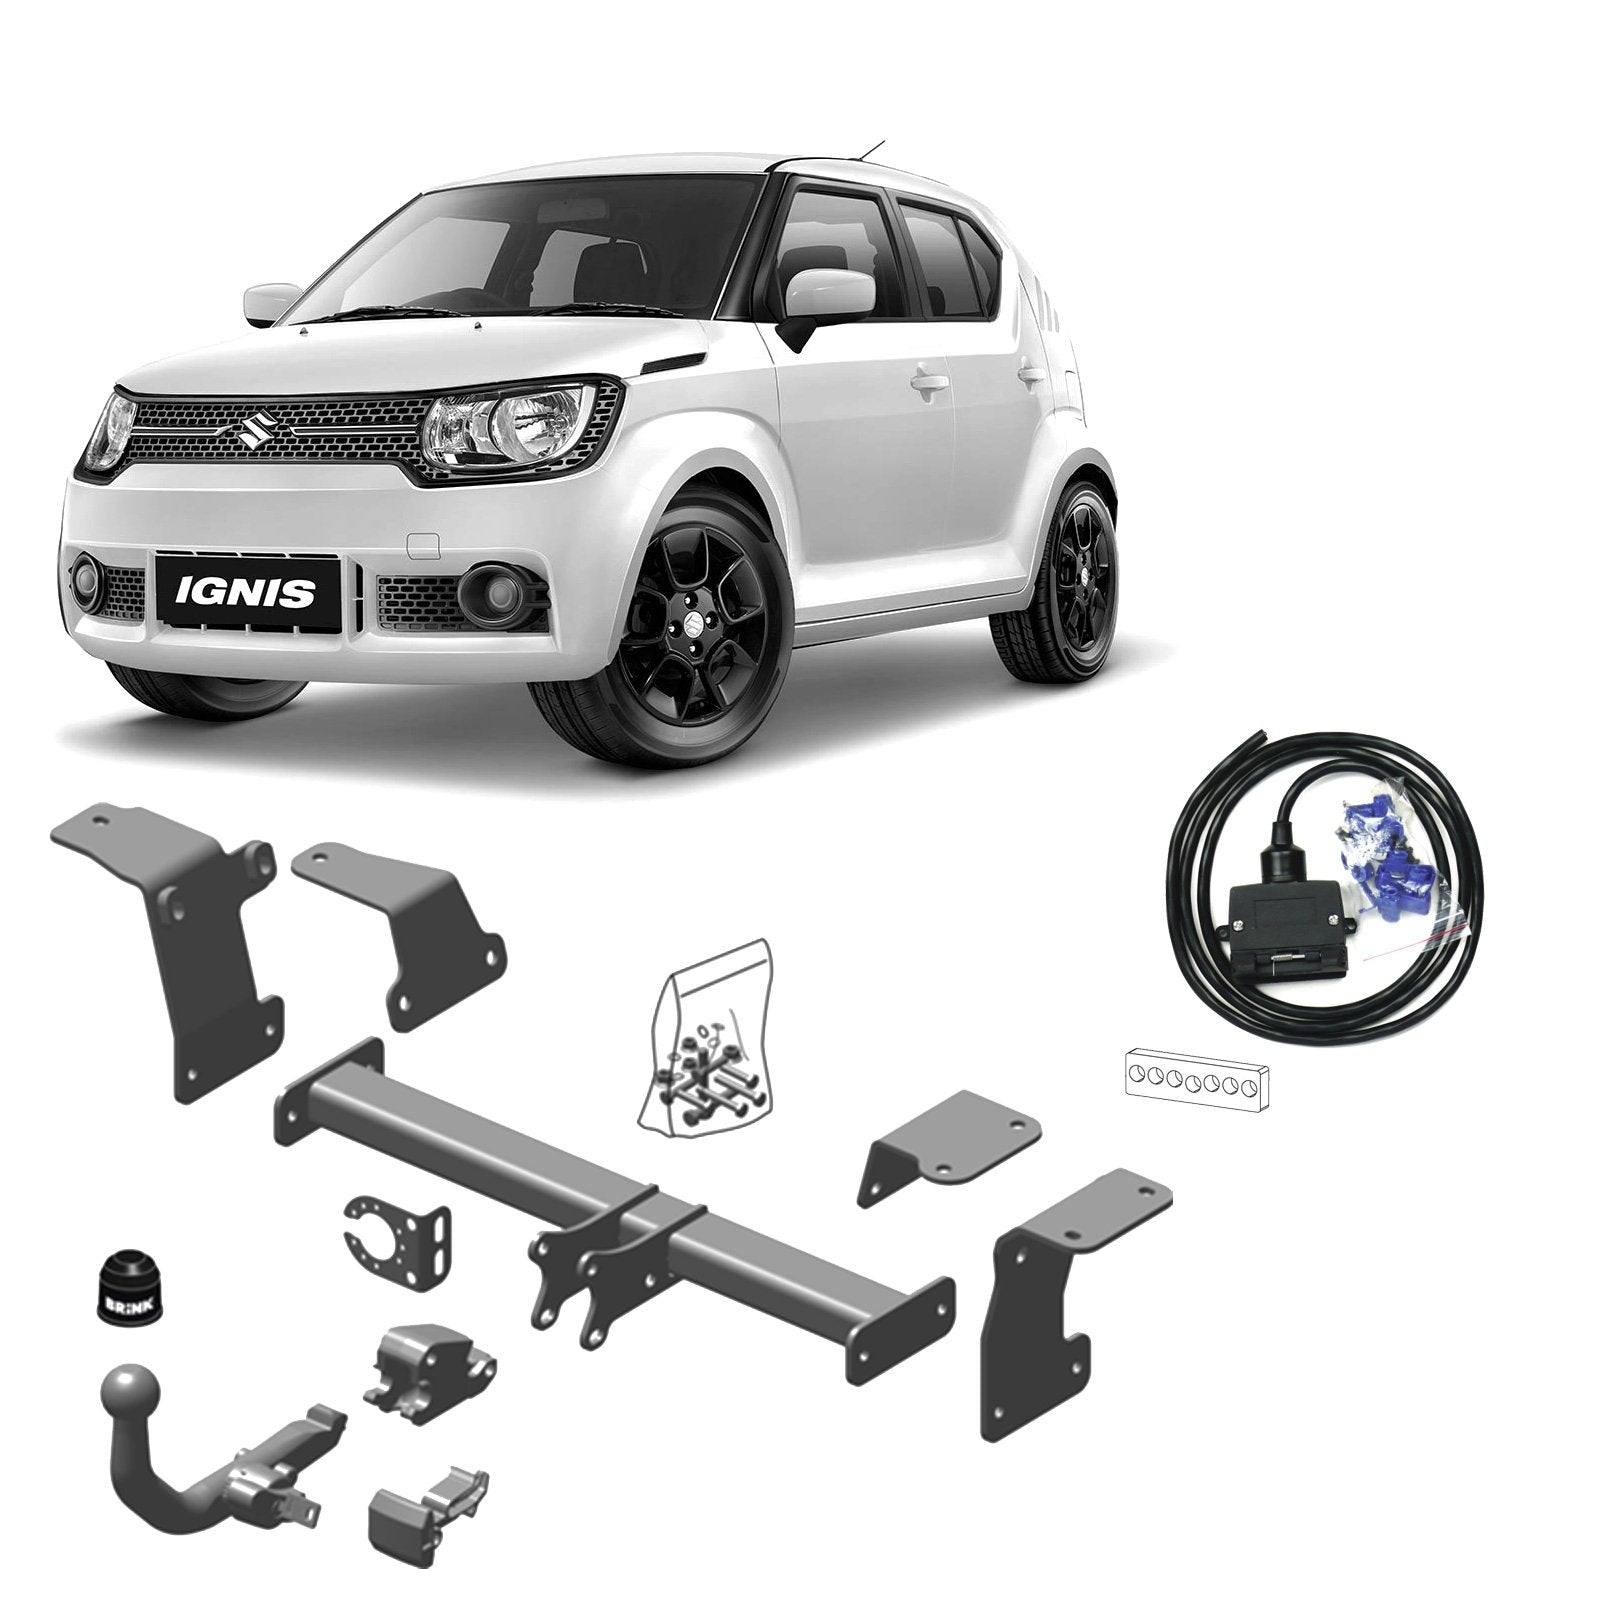 Brink Towbar to suit Suzuki Ignis (10/2016 - on)